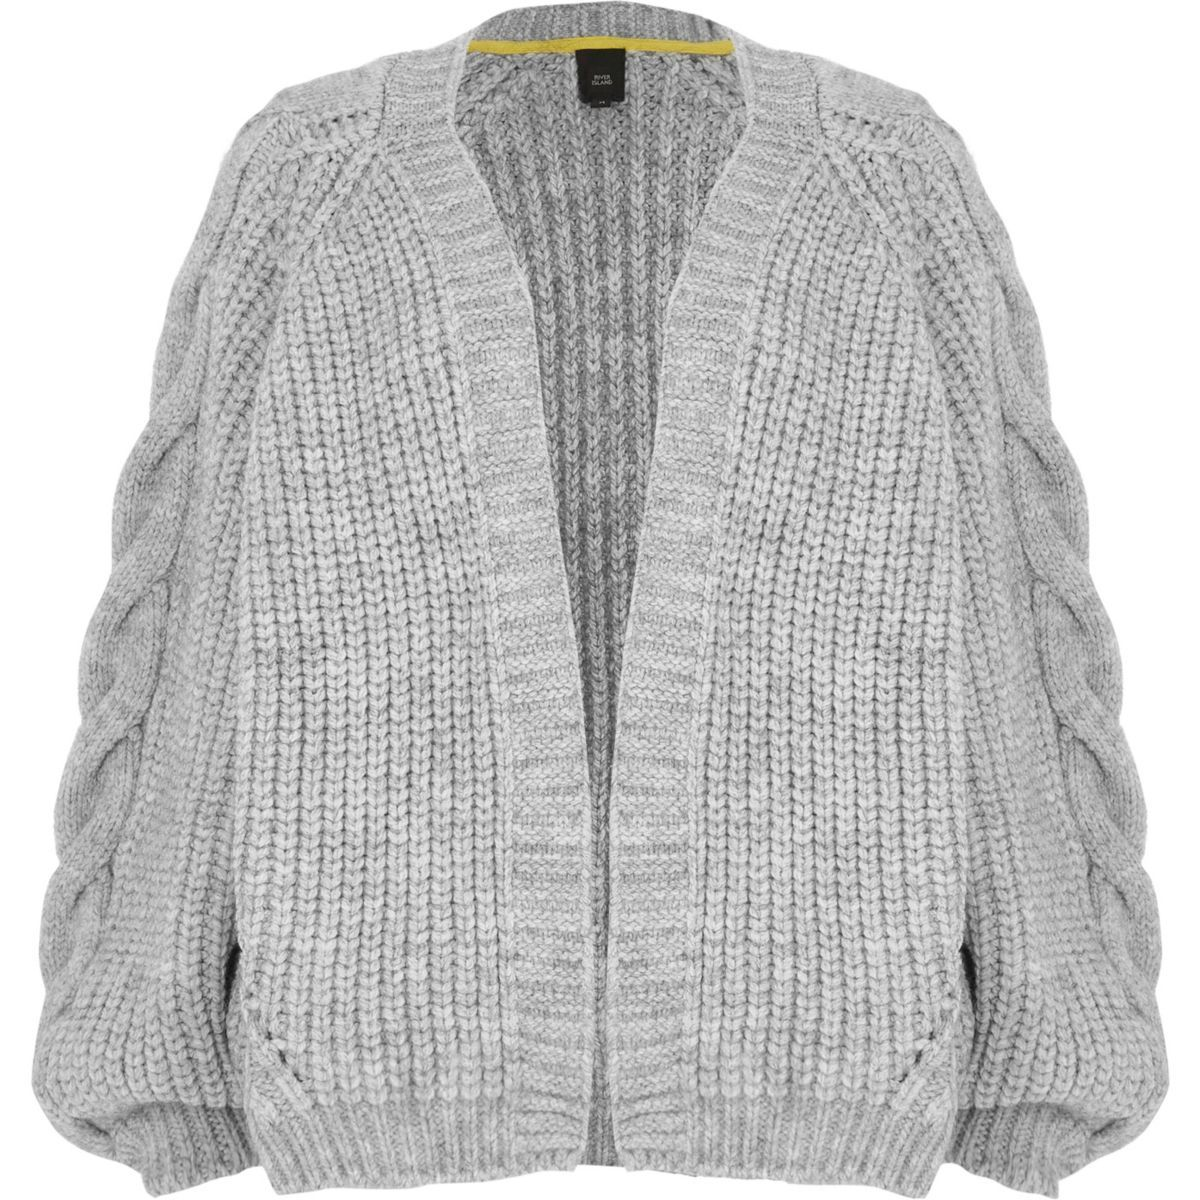 47734b77c05 Grey chunky cable knit cardigan   Fall 2018 sweaters   Cable knit ...